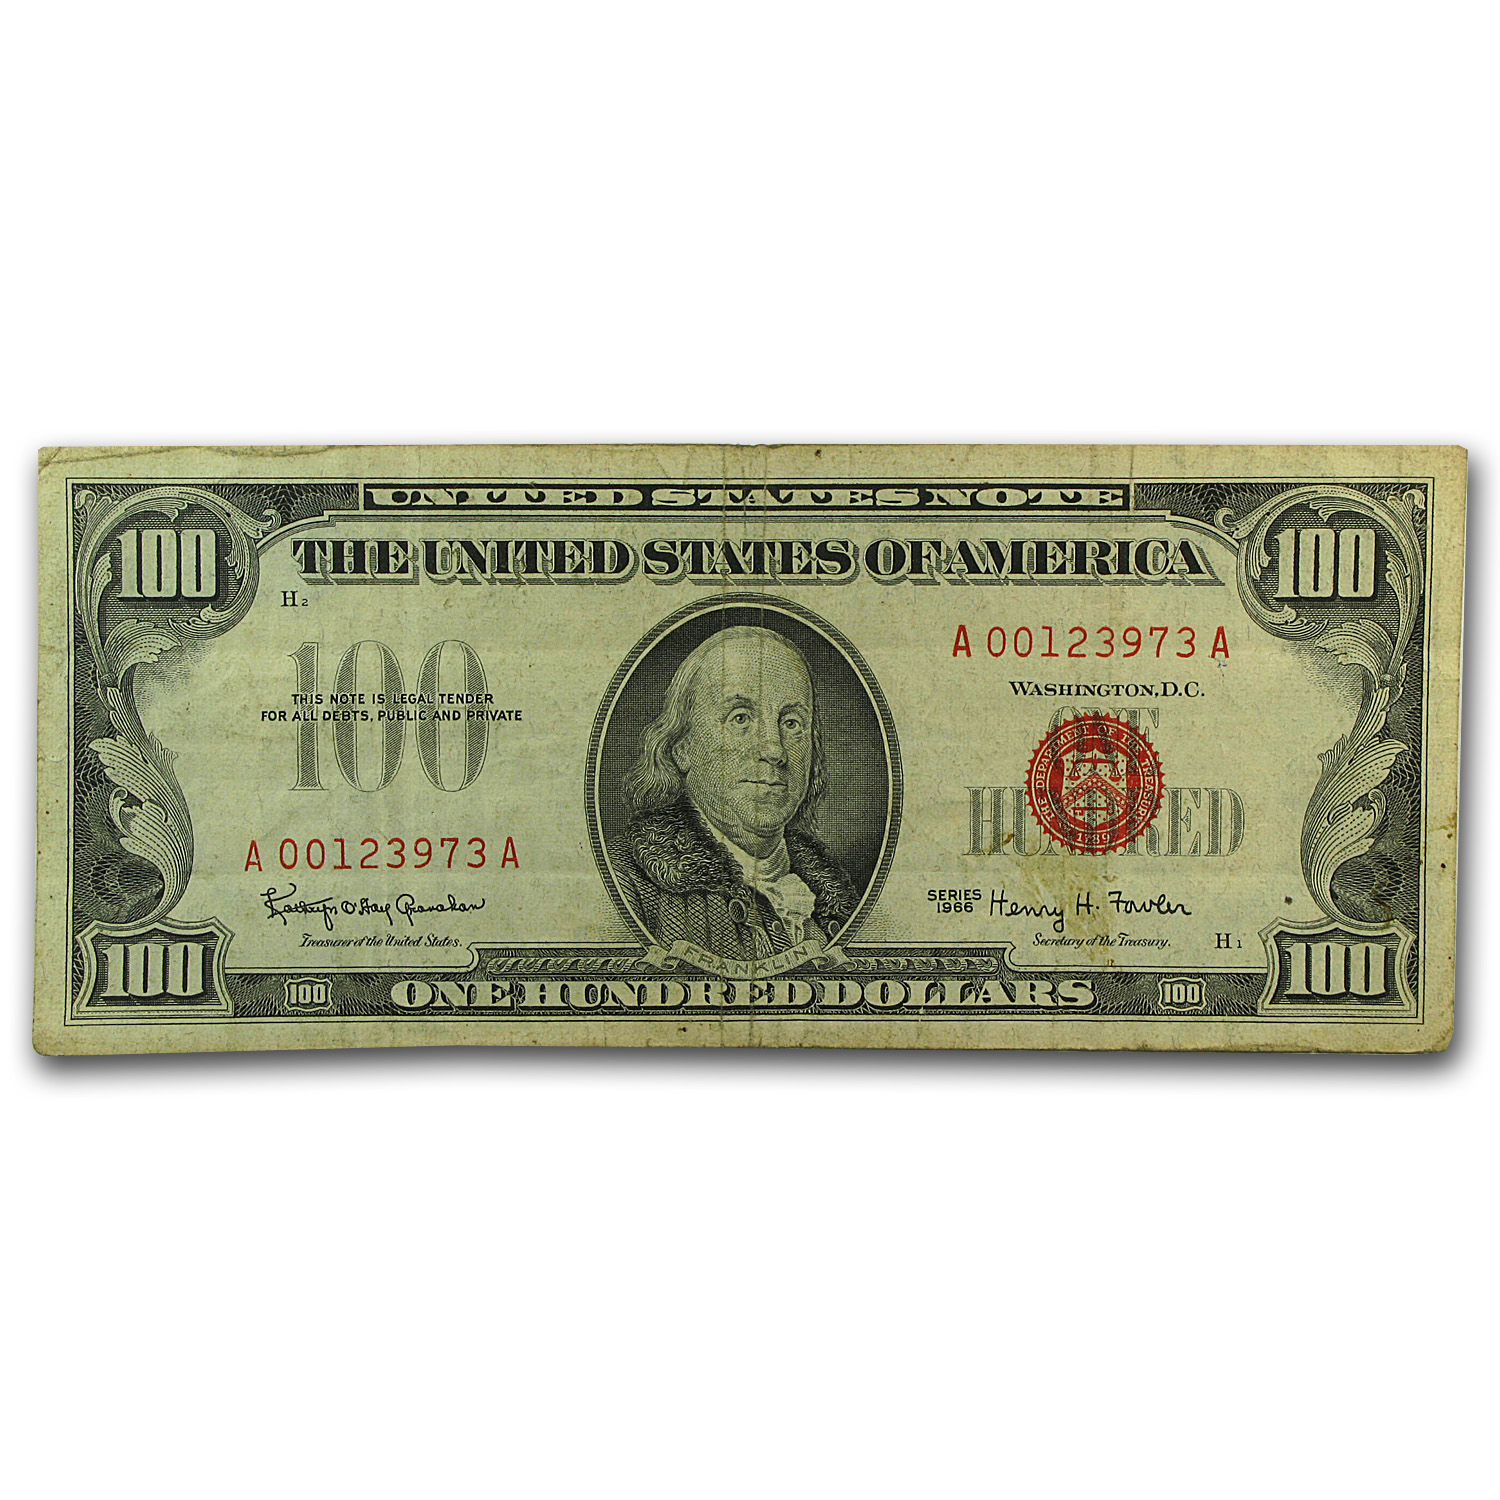 1966 $100 U.S. Note Red Seal Fine